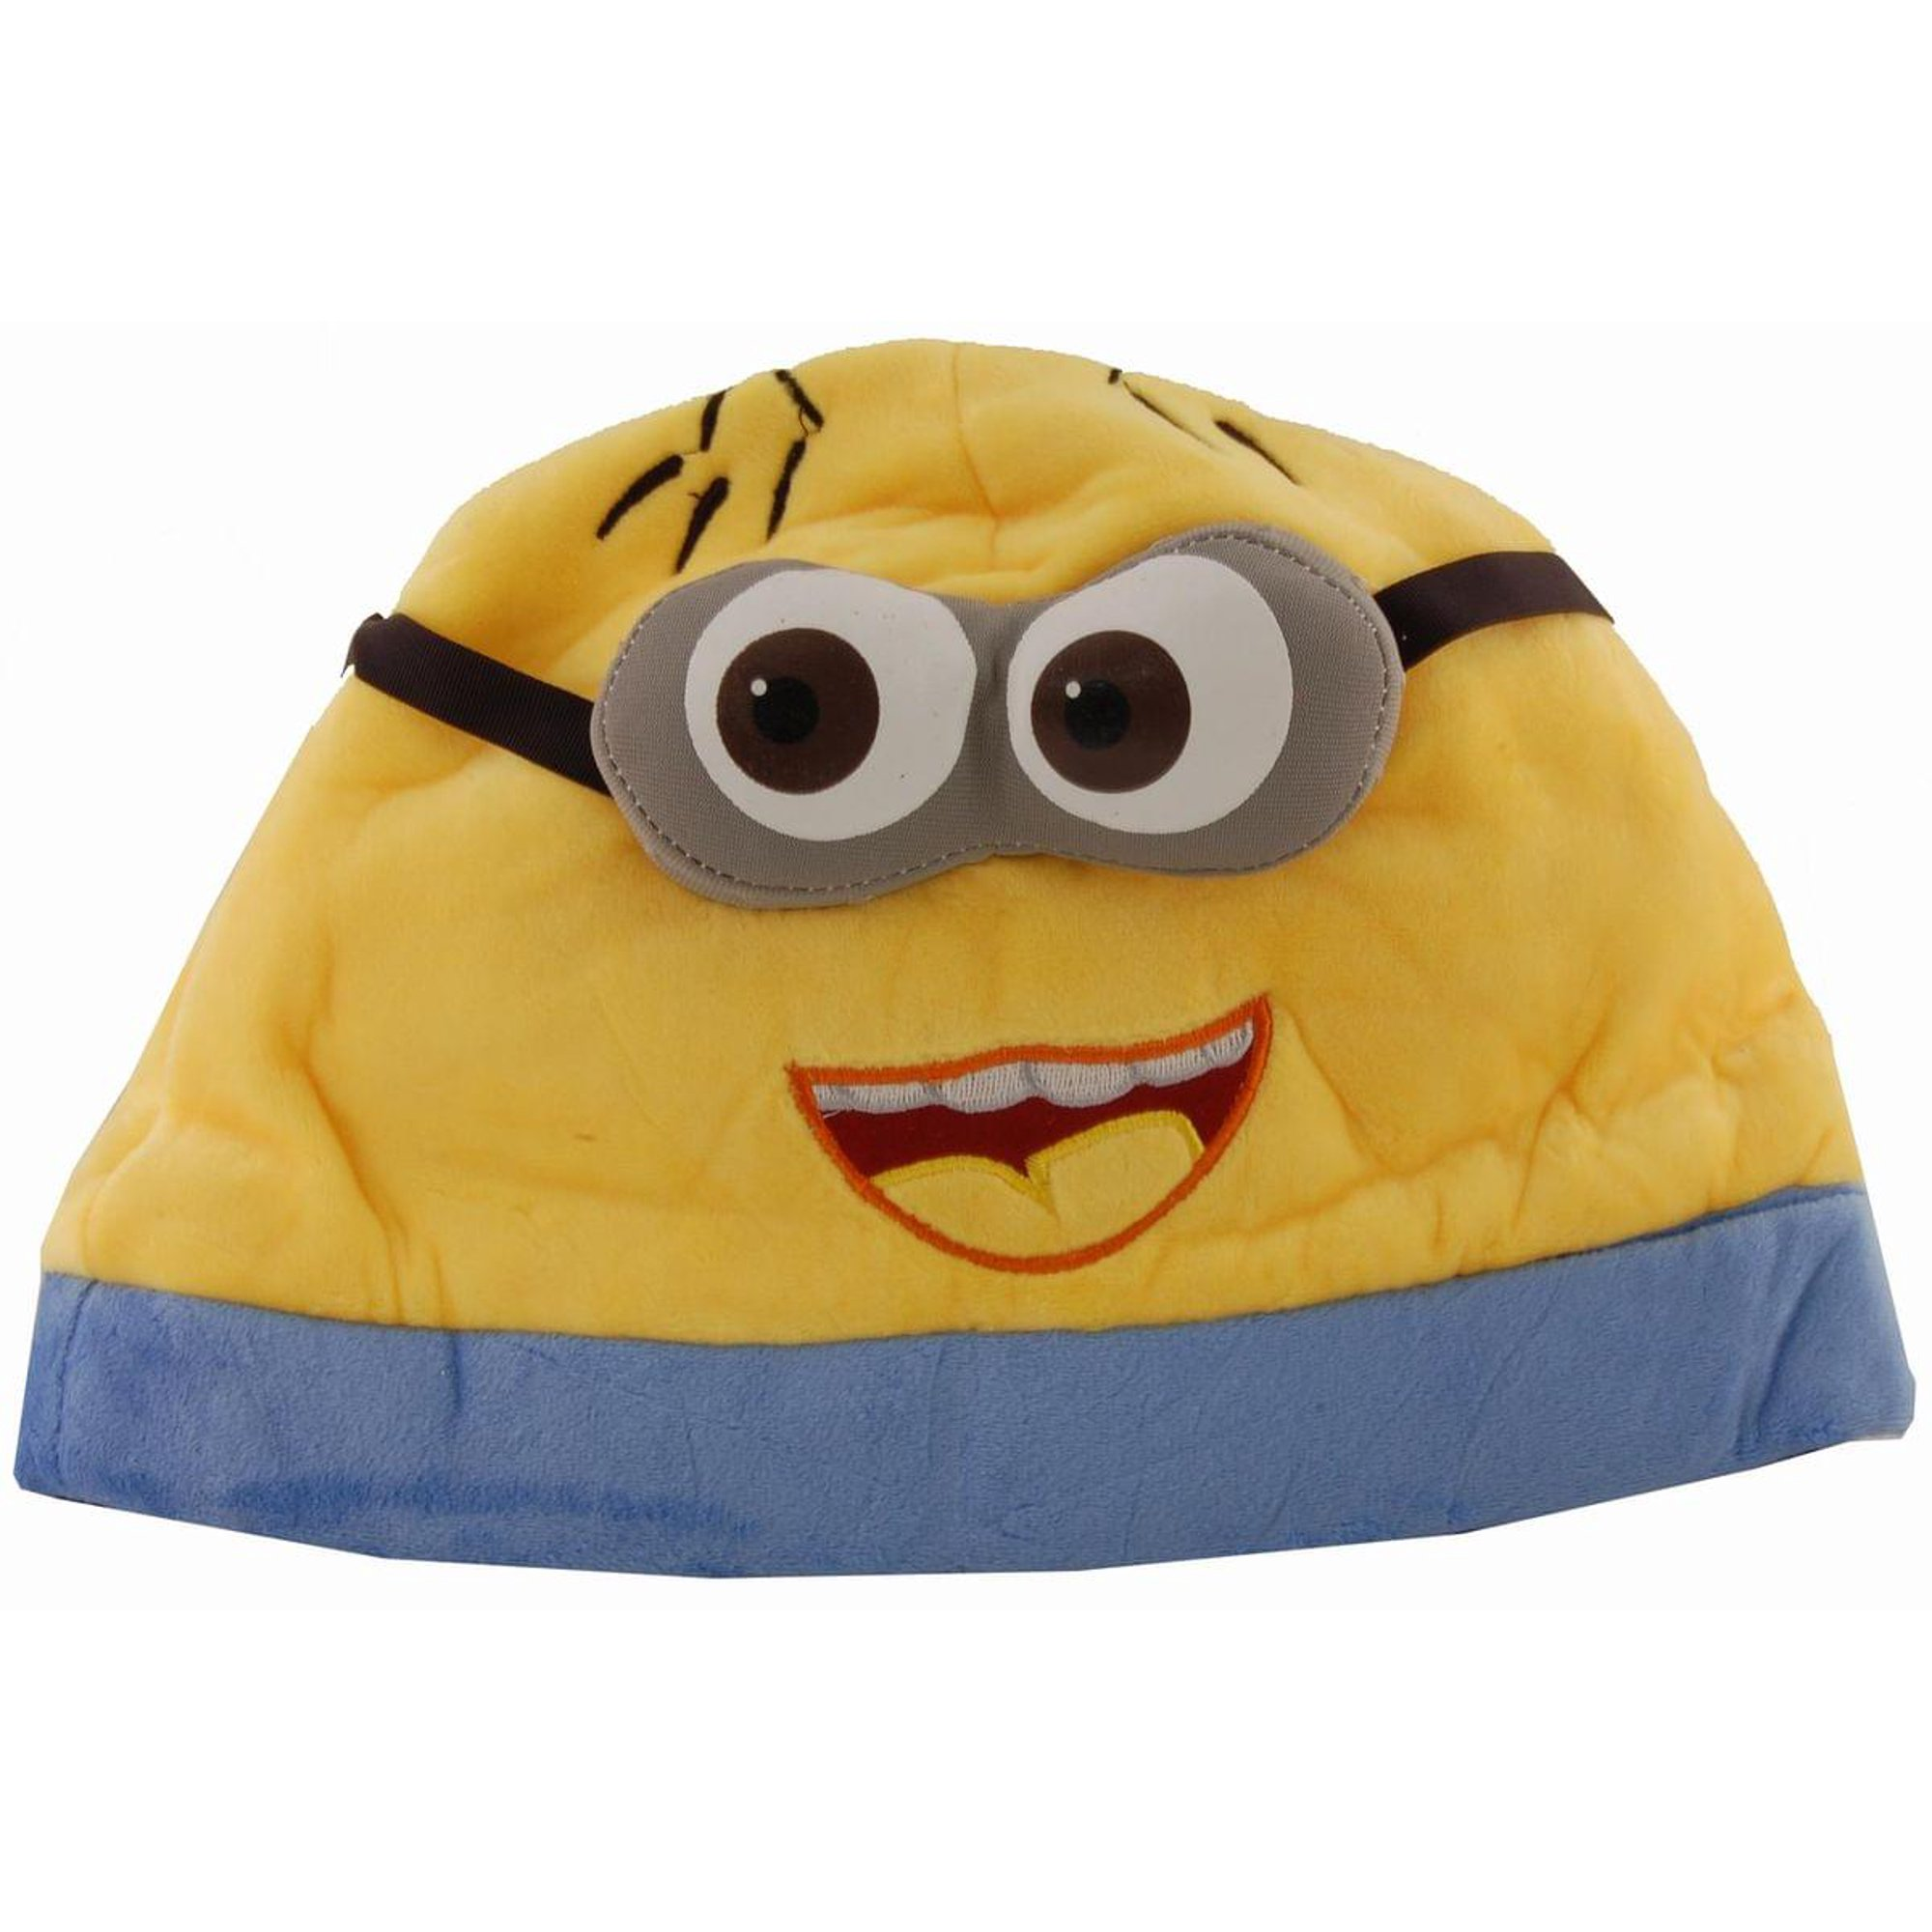 Despicable Me 2 Eyed Open Mouth Minion Jorge Adult Beanie Walmart